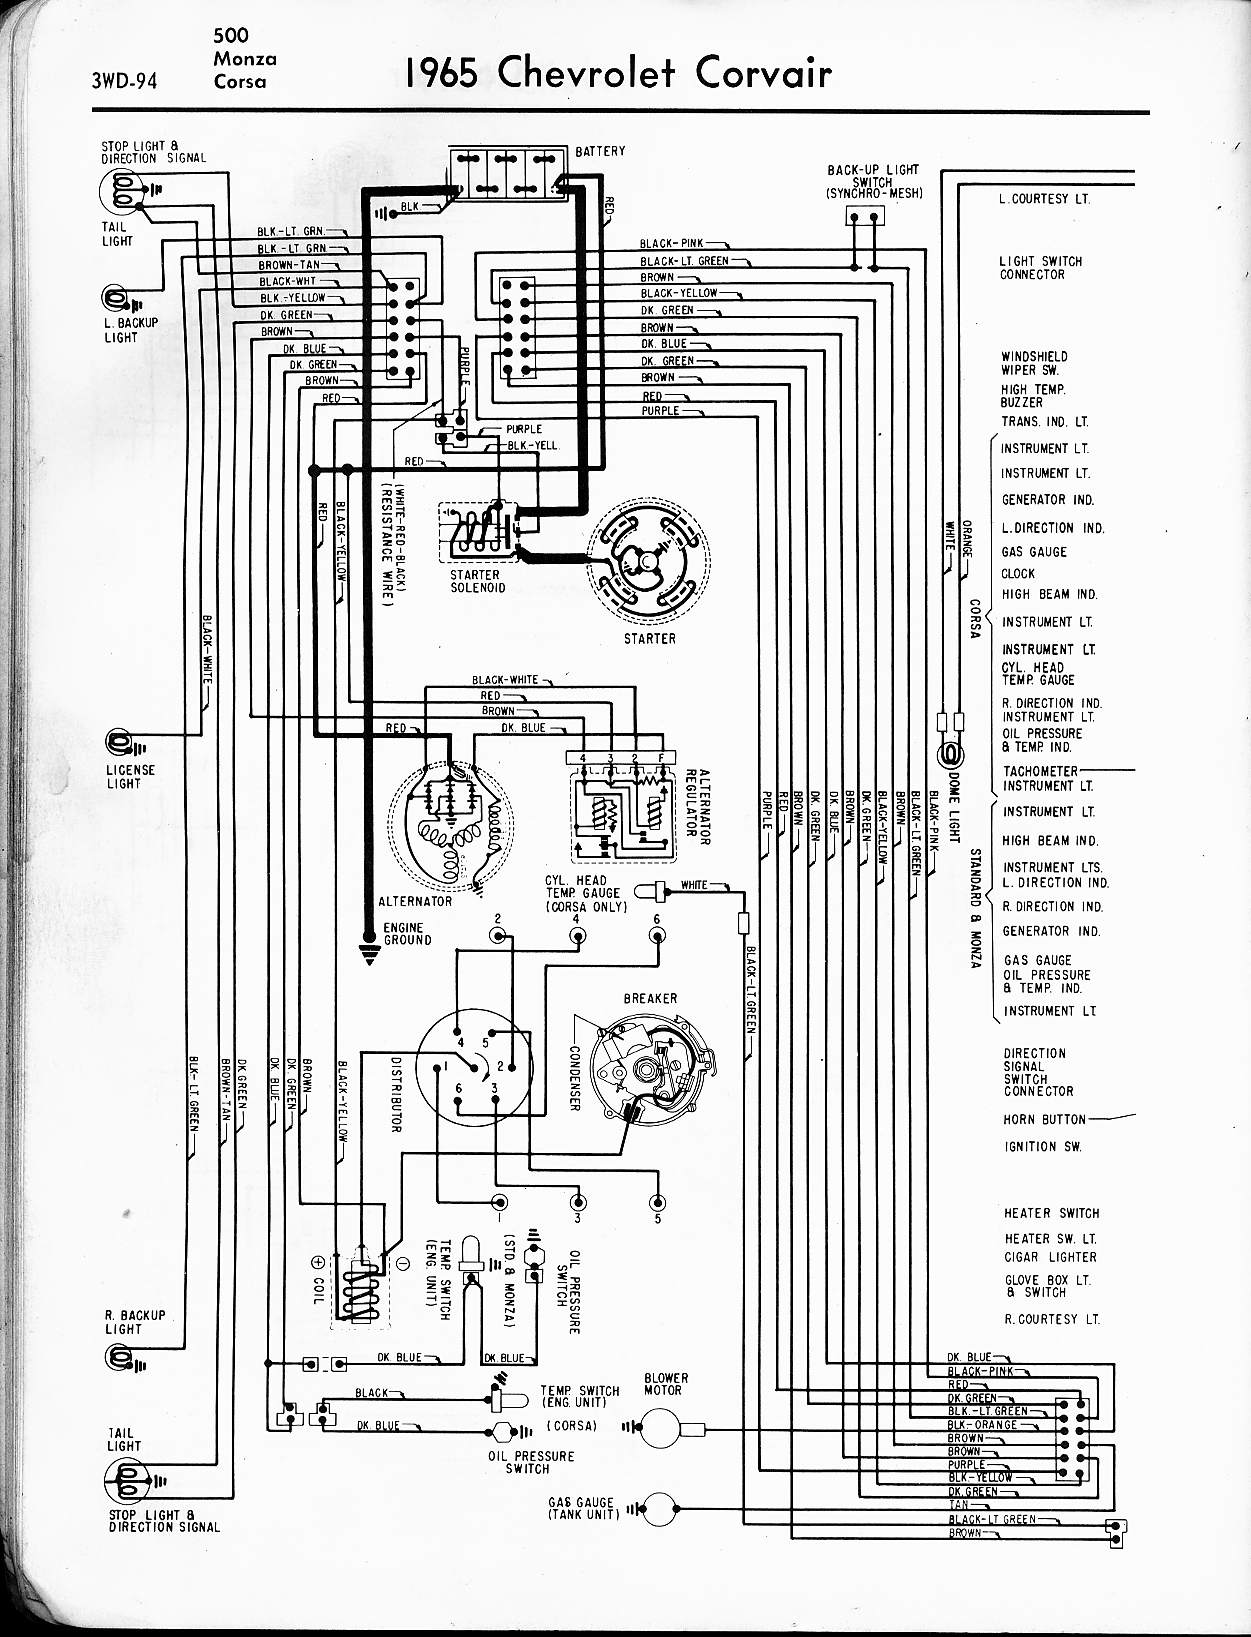 MWireChev64_3WD 094 1965 corvair wiring diagram 1965 chevelle wiring diagram \u2022 free 65 Chevy Truck Wiring Diagram at soozxer.org